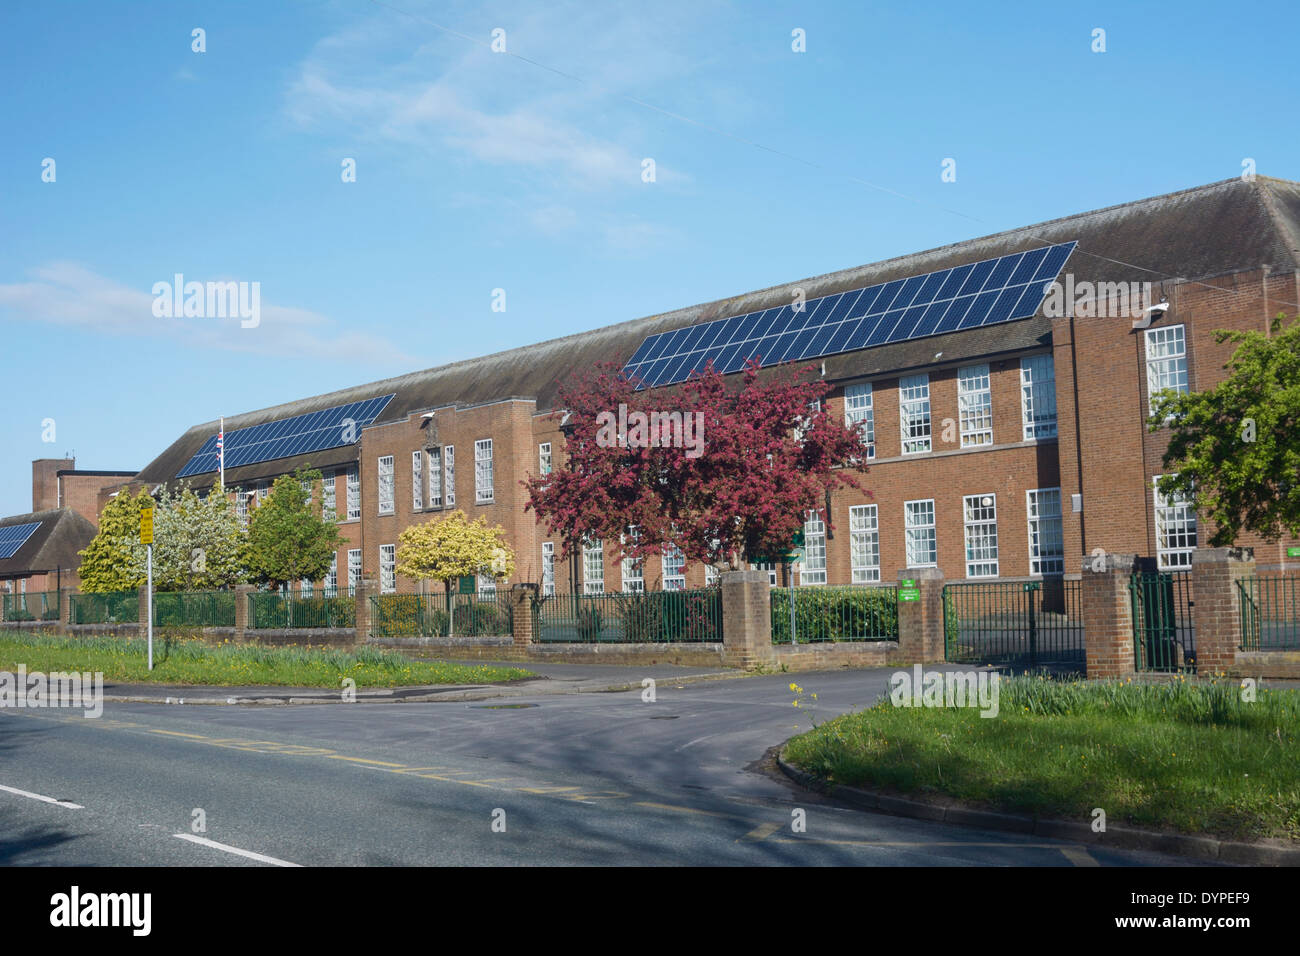 Solar panels on the roof of Helsby High School in Cheshire. - Stock Image